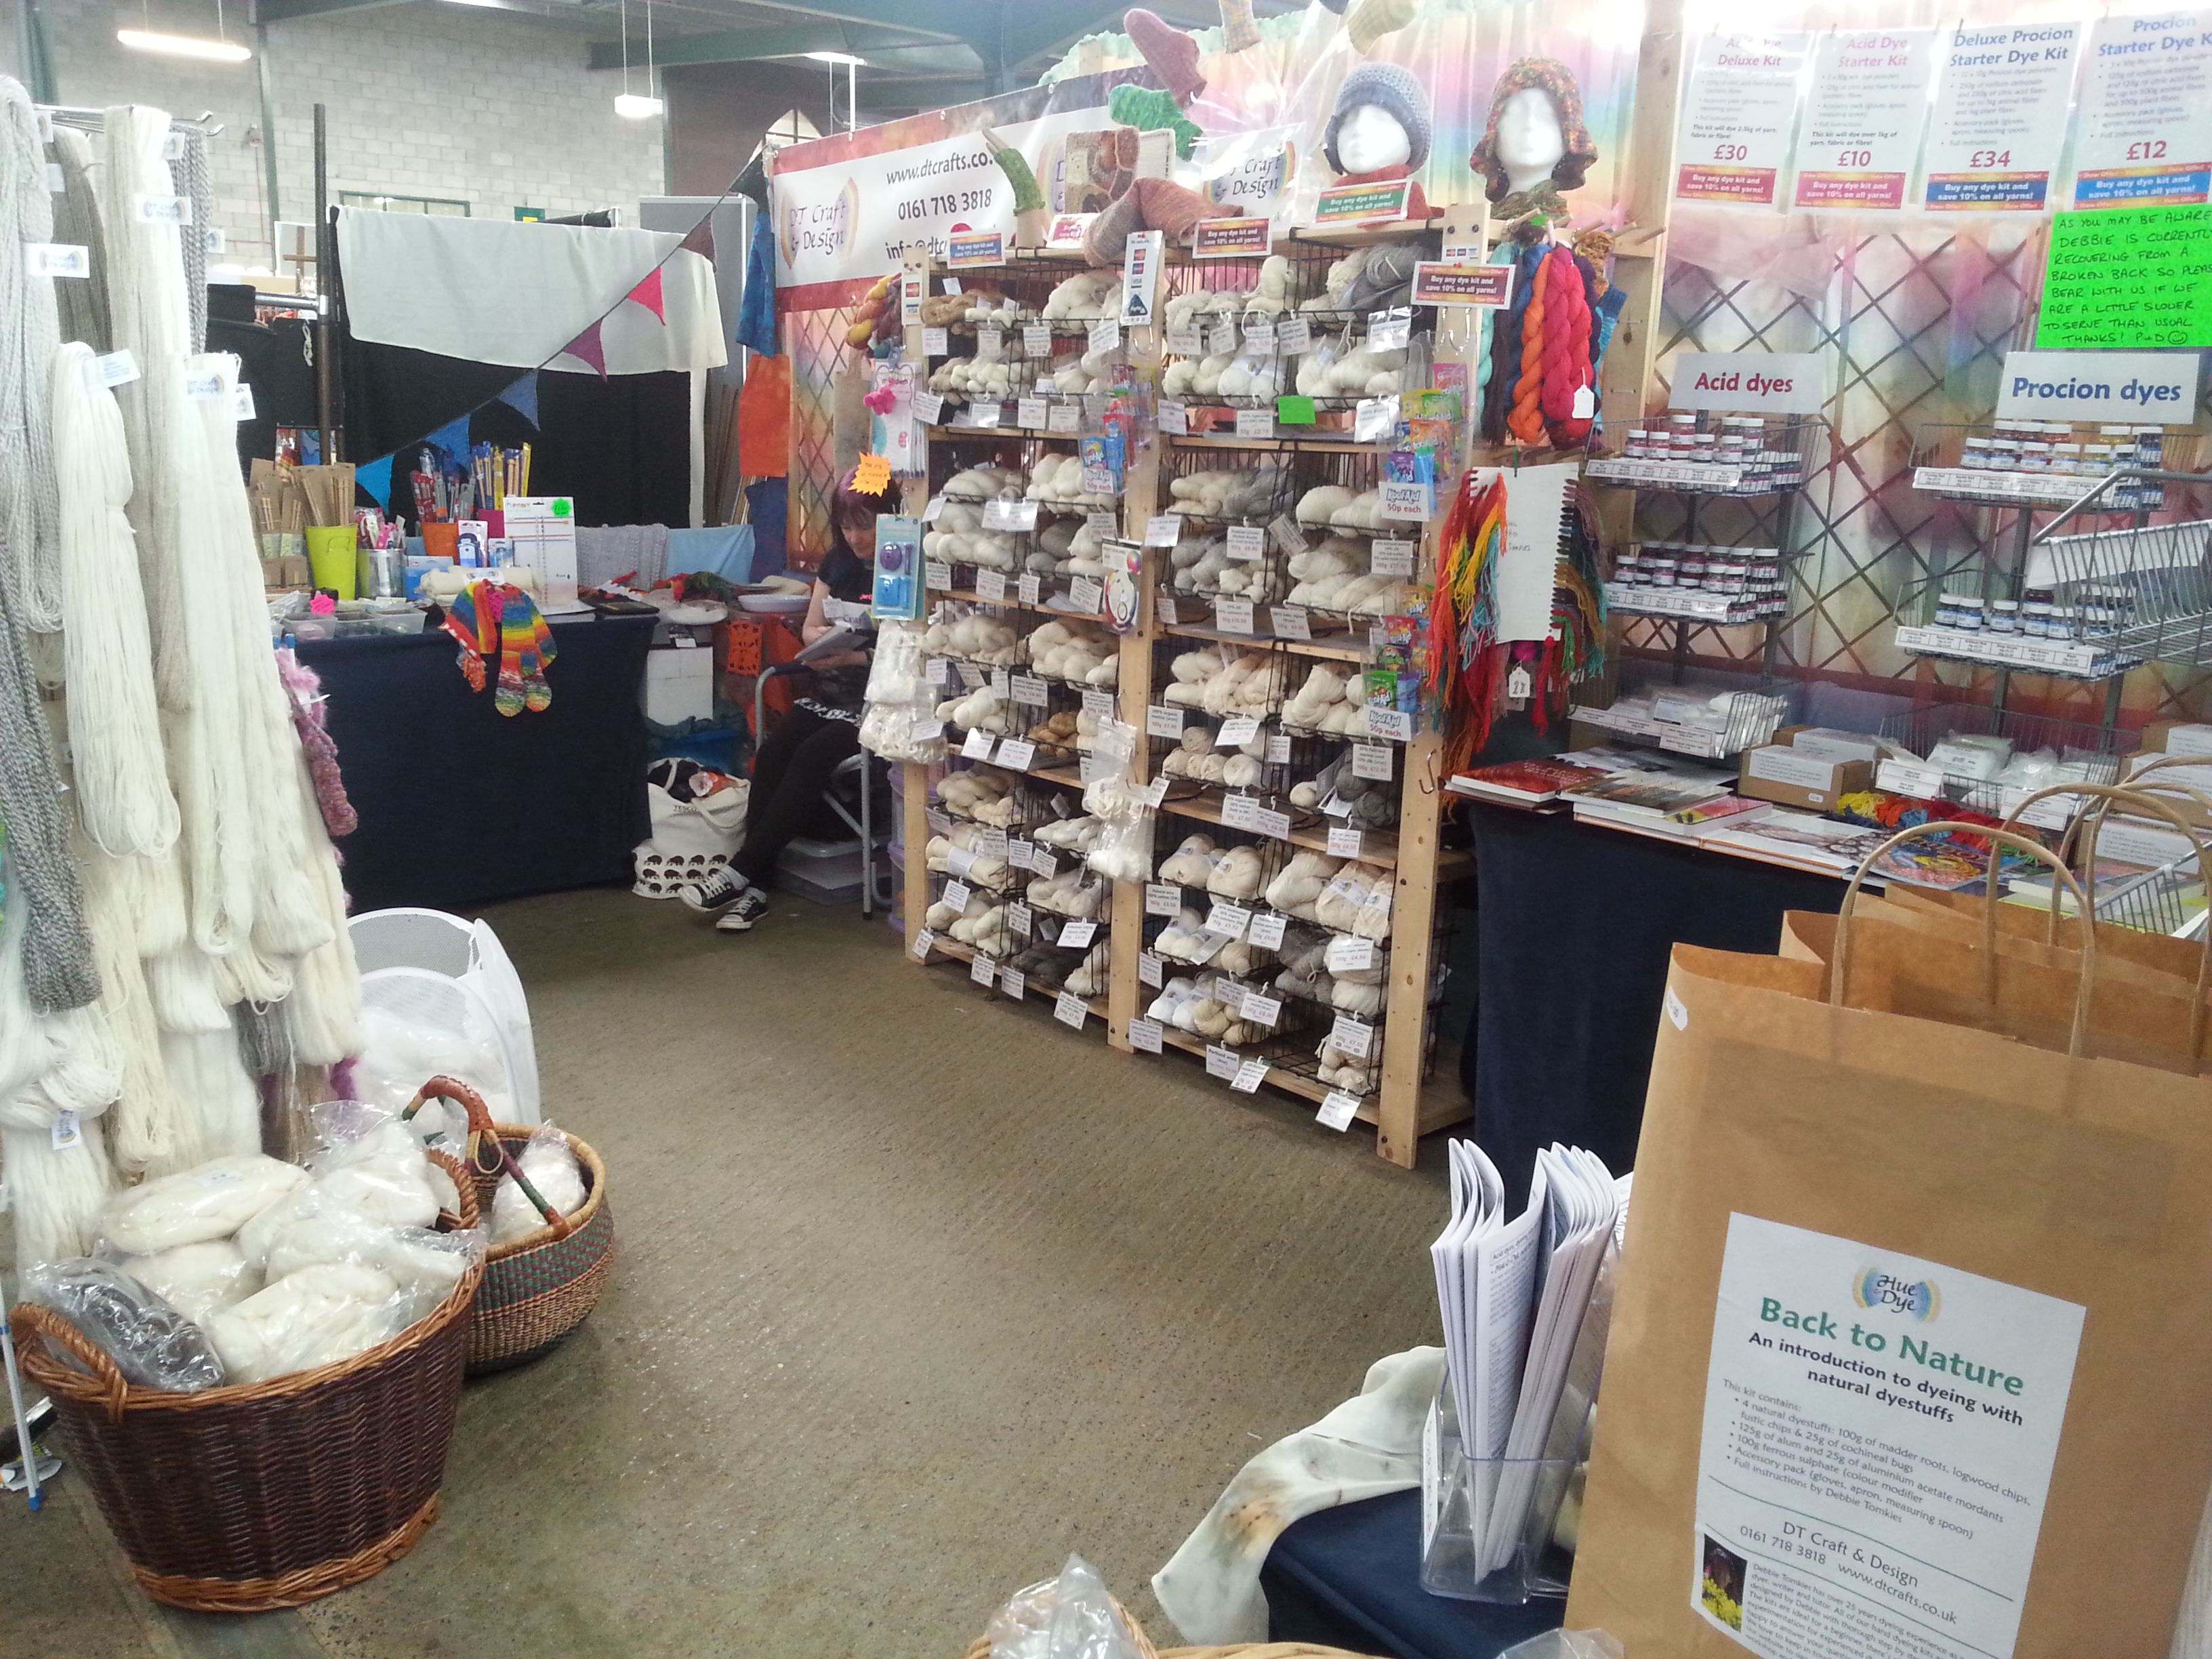 DT Craft & Design Stall C63-C64 at Woolfest, 22nd -23rd June 2018